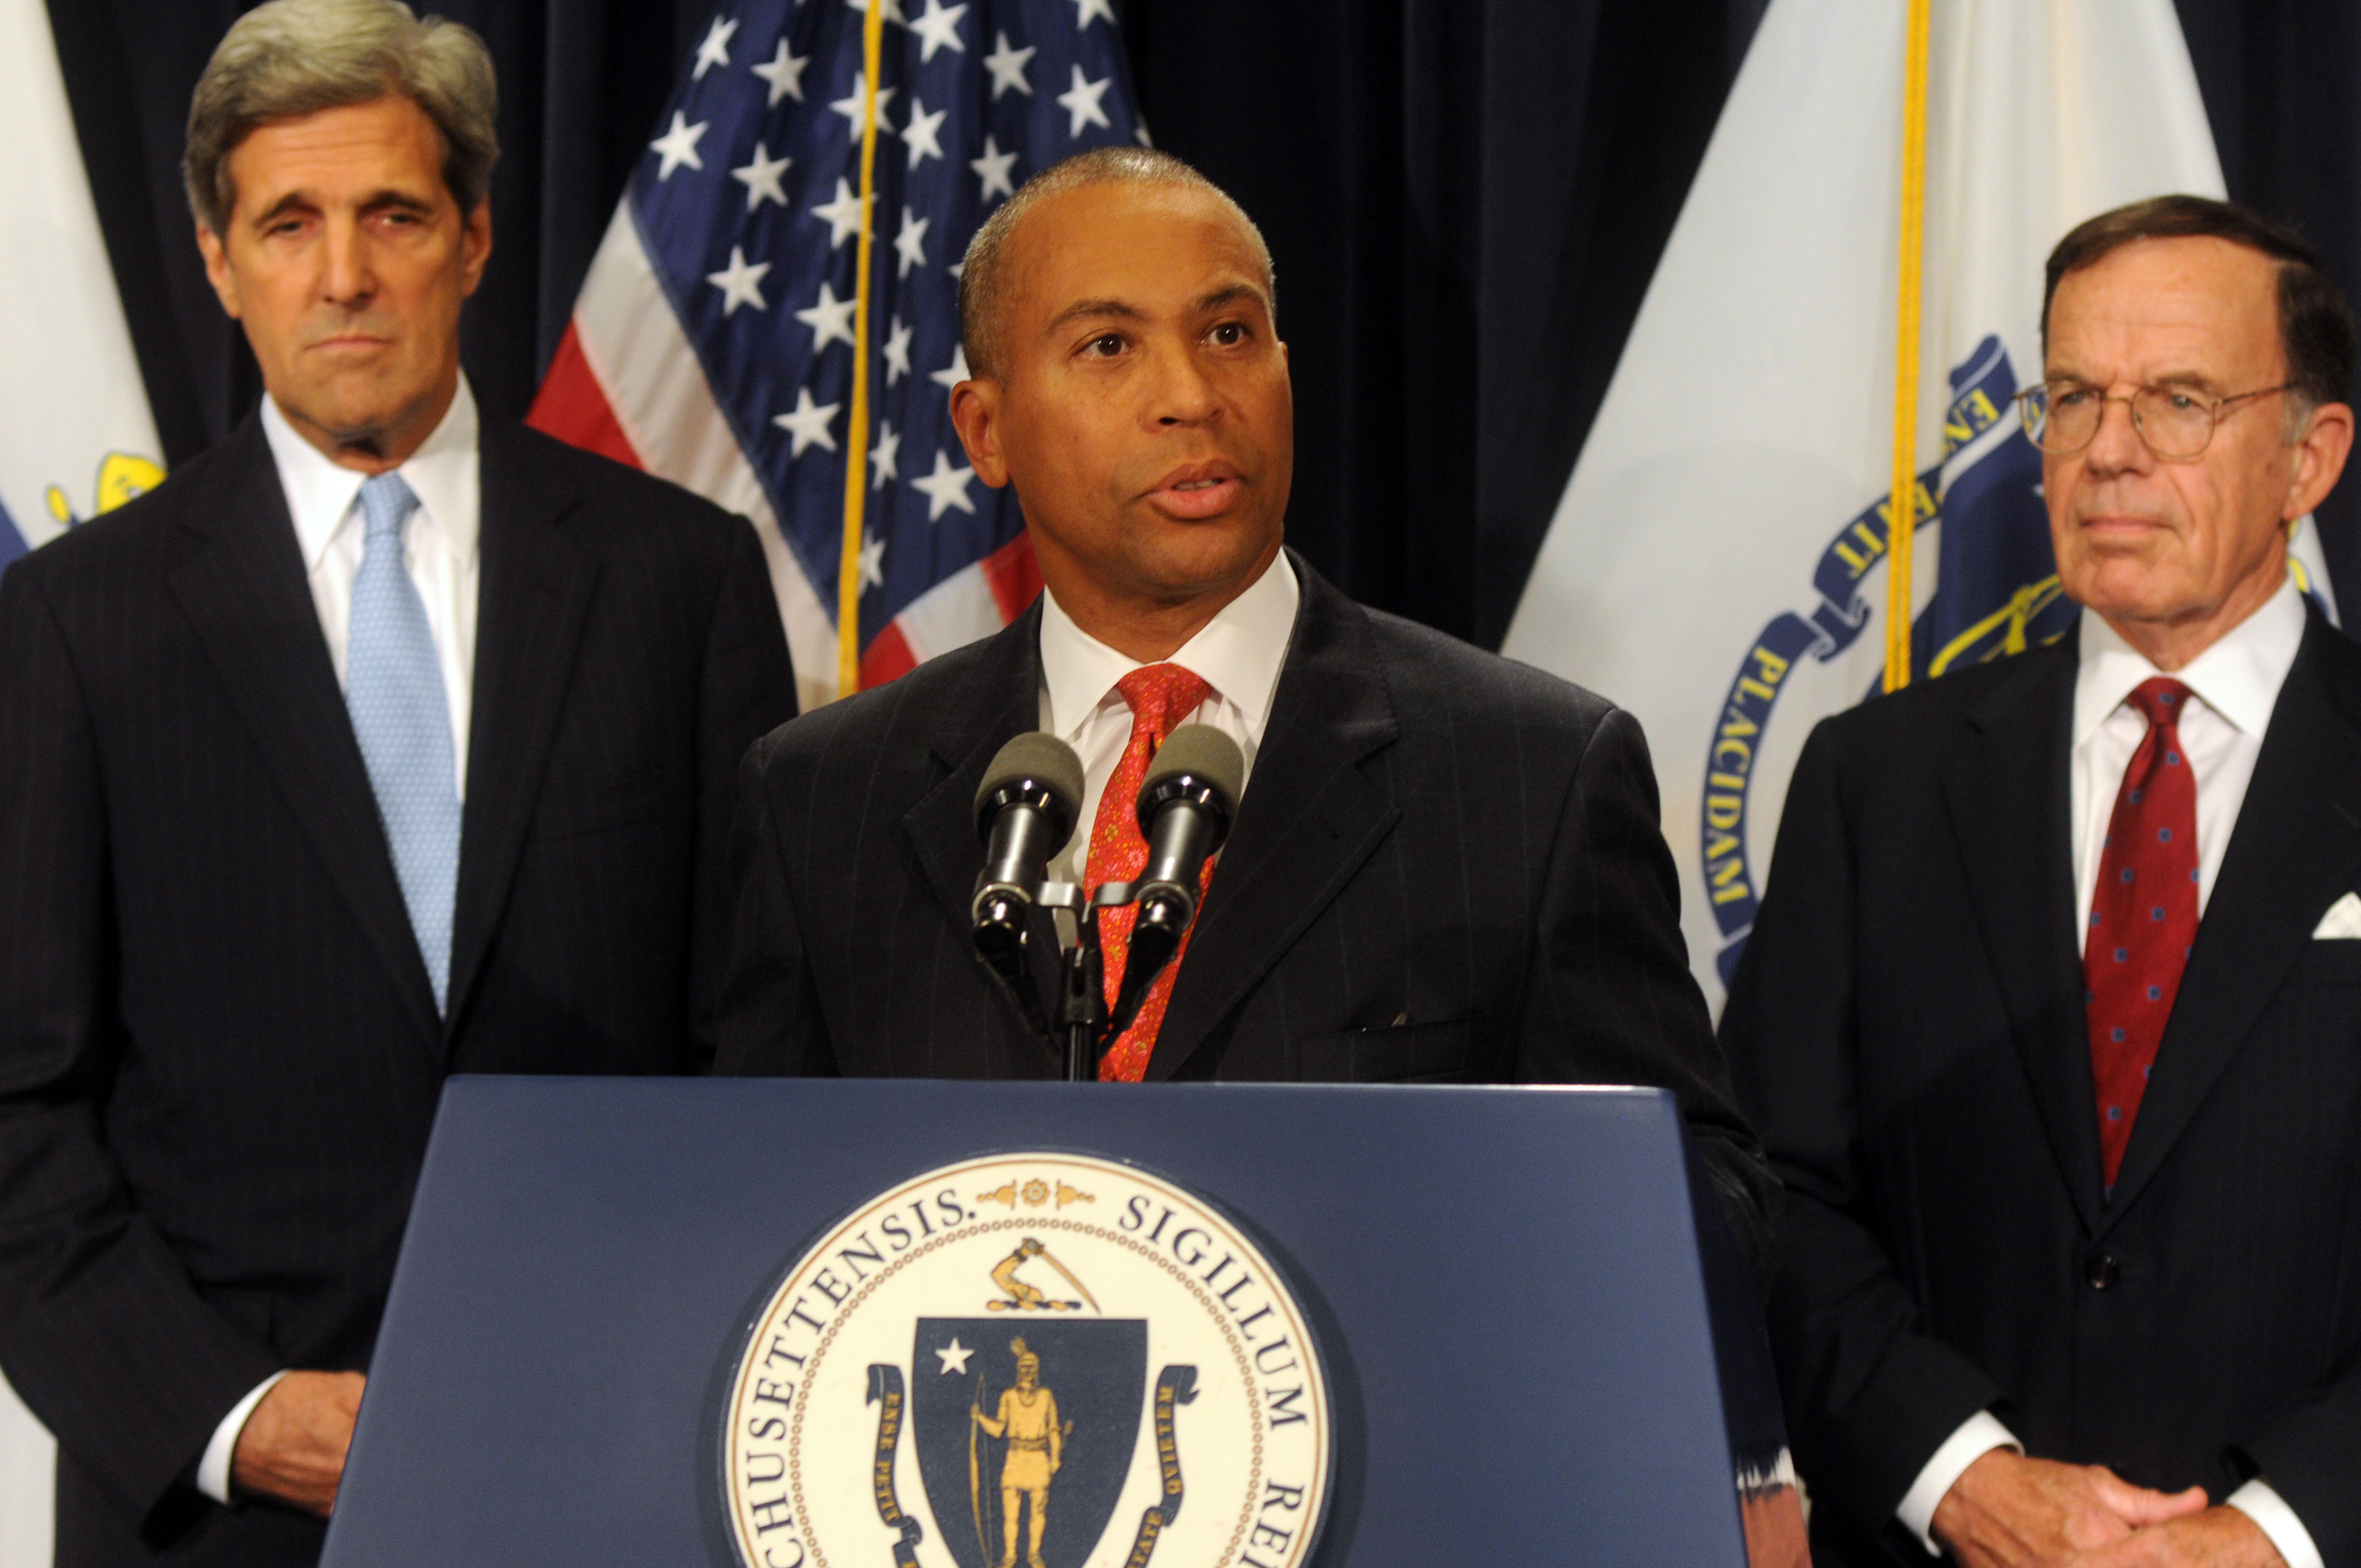 BOSTON, MA - SEPTEMBER 24: Massachusetts Democratic Governor Deval Patrick (C) speaks as U.S. Senator John Kerry (D-MA) (L) and Interim Senator Paul G. Kirk Jr. (D-MA) look on at a press conference on September 24, 2009 at the Statehouse in Boston, Massachusetts. Kirk, the former Democratic National Committee (DNC) chairman, will take over Sen. Edward M. Kennedy's seat that was left vacated from his passing on August 25. (Photo by Darren McCollester/Getty Images)